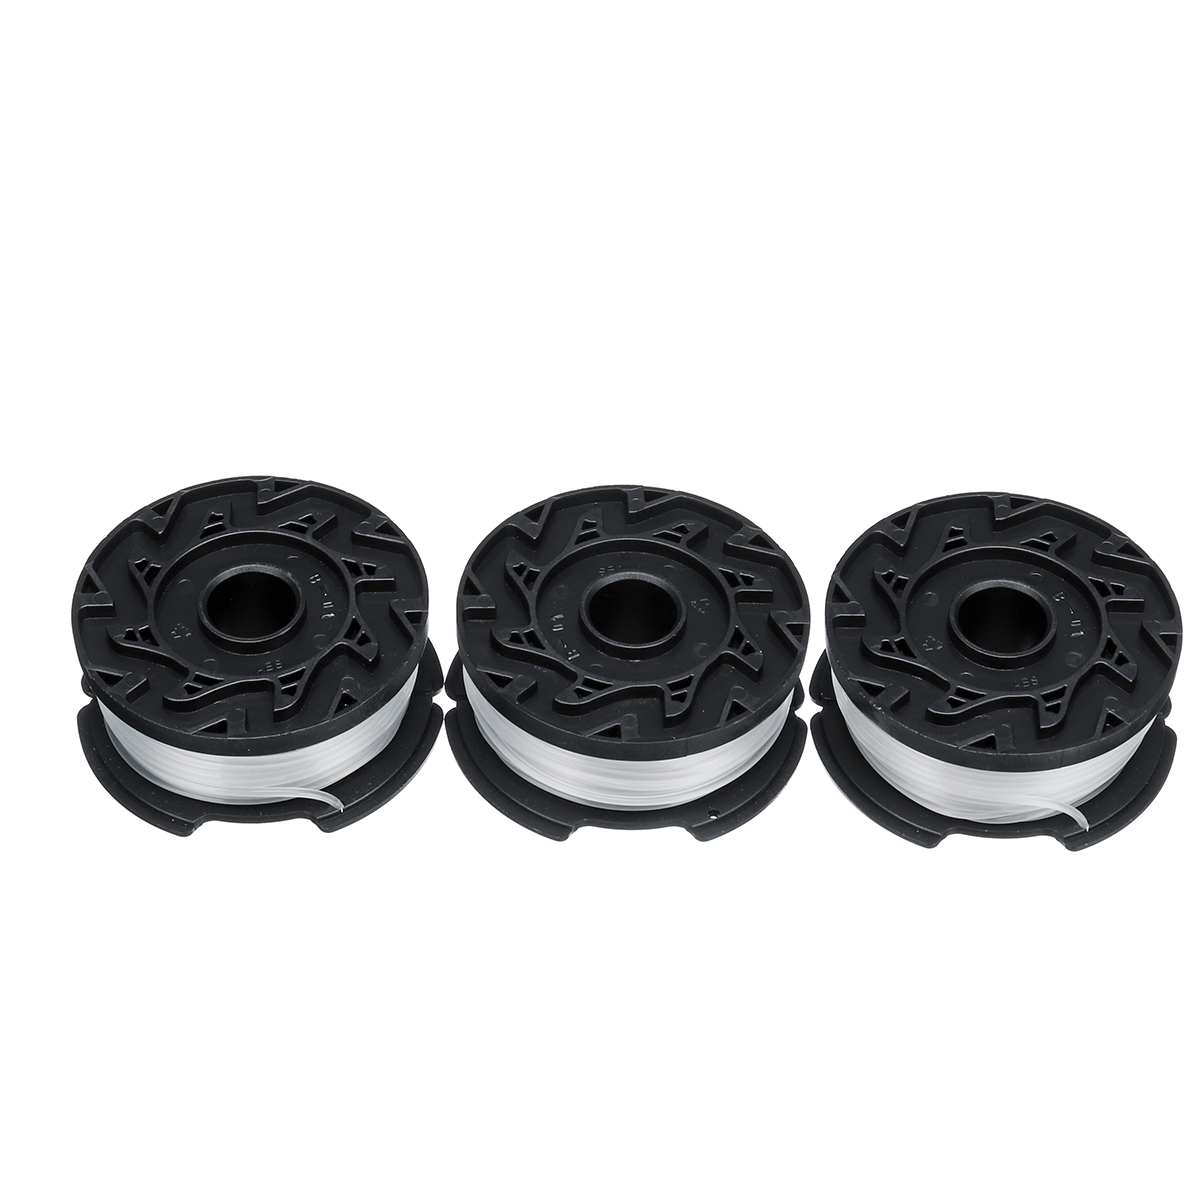 3pcs 30ft 0.065Inch Spool Lines For Black+Decker AF-100 Grass Trimmer Replacement Tools Kit